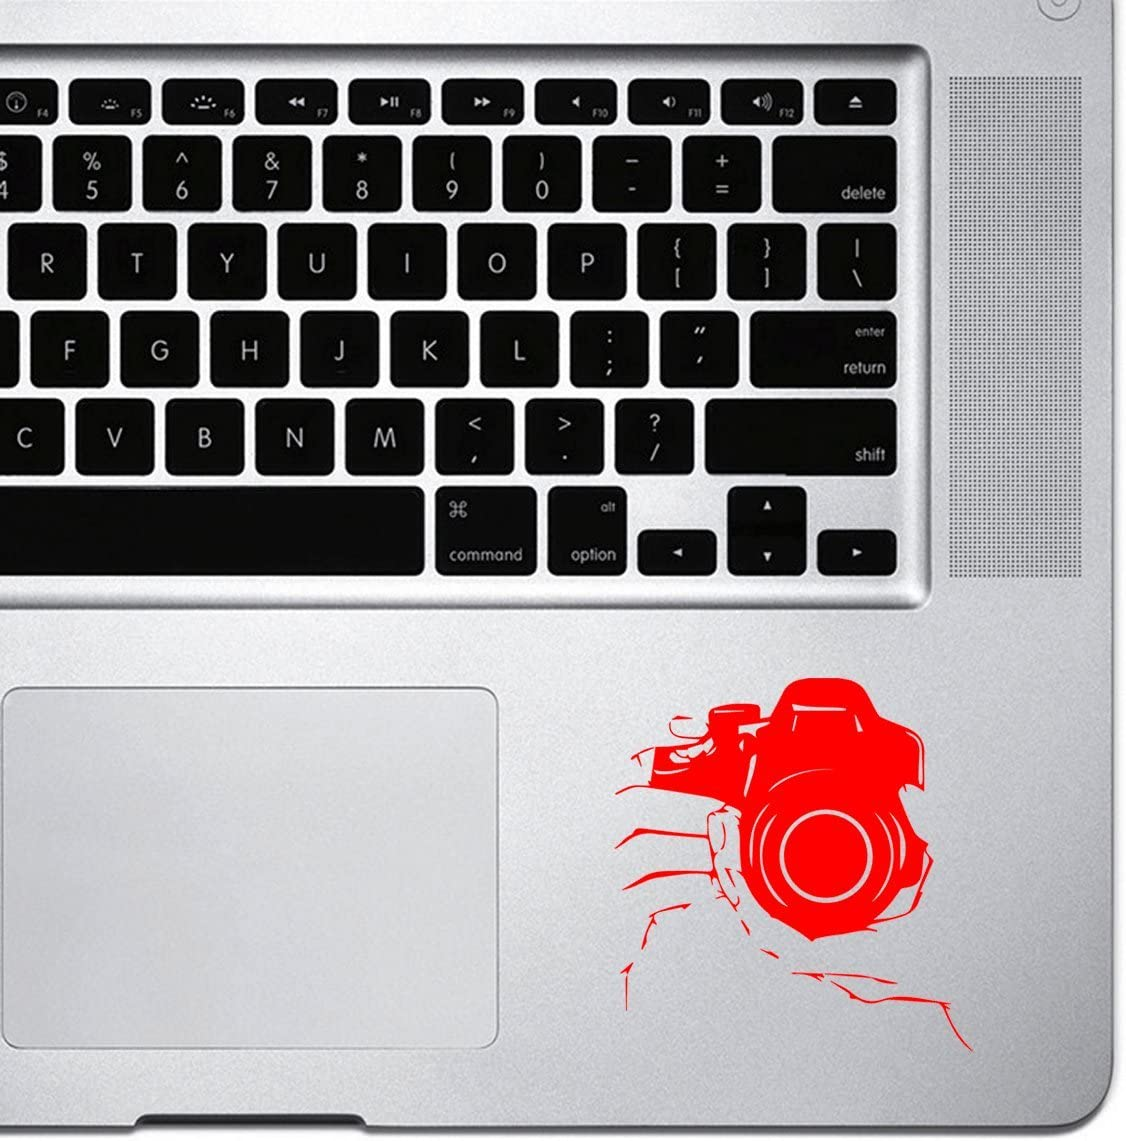 StickAny Palm Series Holding DSLR Camera Sticker for MacBook Pro, Chromebook, and Laptops (Red)